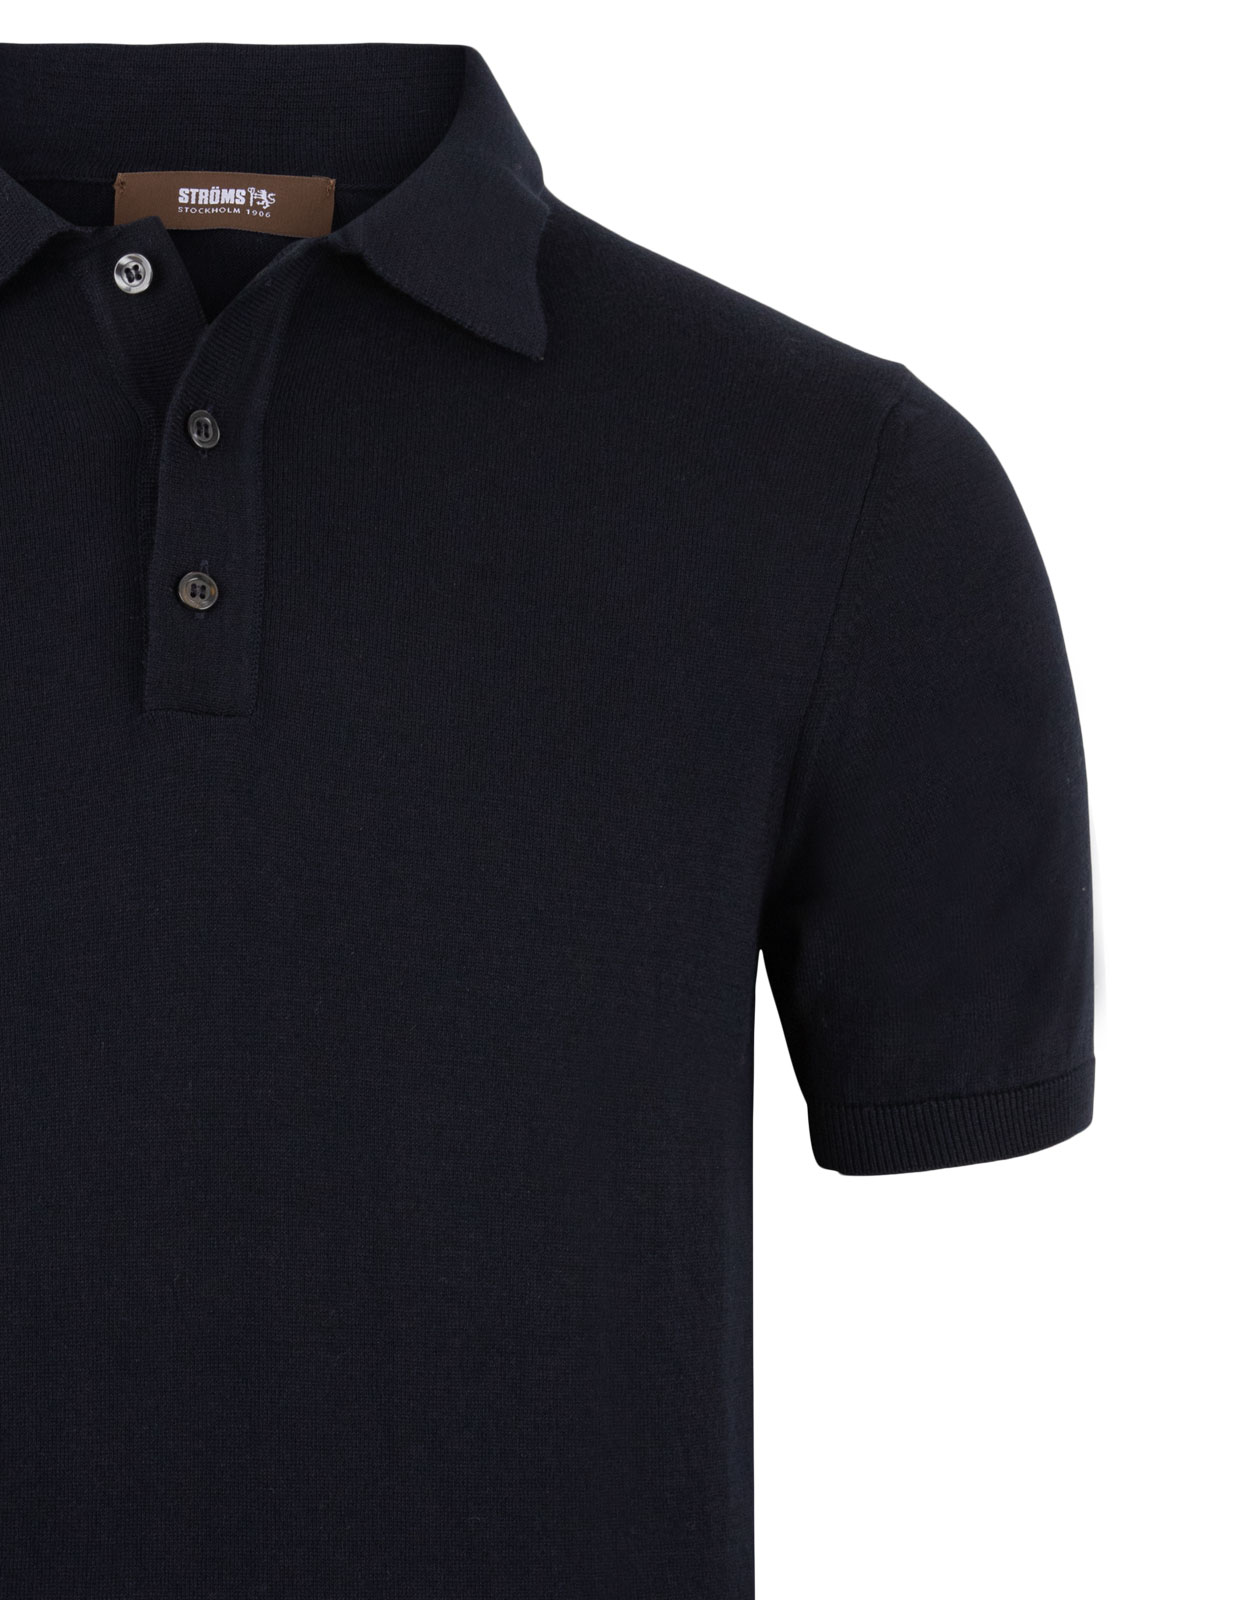 Polo Shirt Knitted Cotton Blue Navy